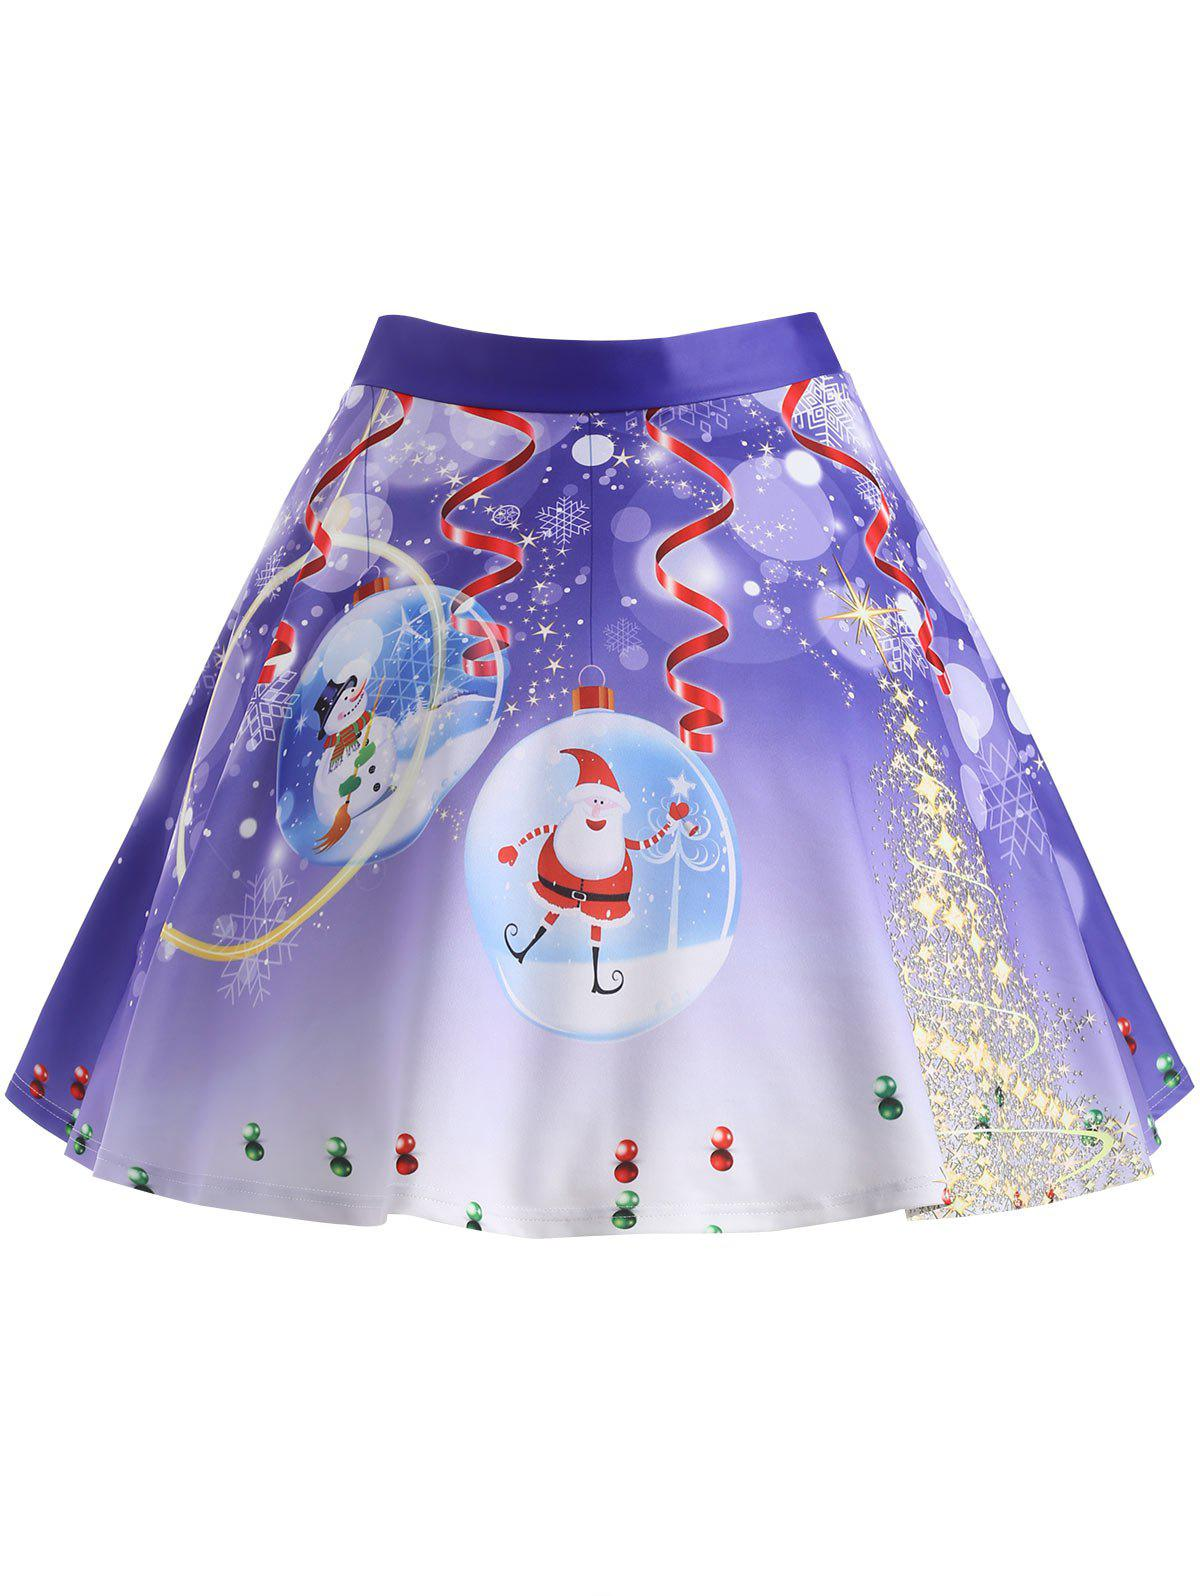 Christmas Tree Santa Claus Print Plus Size SkirtWOMEN<br><br>Size: 5XL; Color: PURPLE; Material: Polyester; Length: Knee-Length; Silhouette: A-Line; Pattern Type: Plant,Star; Season: Winter; With Belt: No; Weight: 0.3750kg; Package Contents: 1 x Skirt;